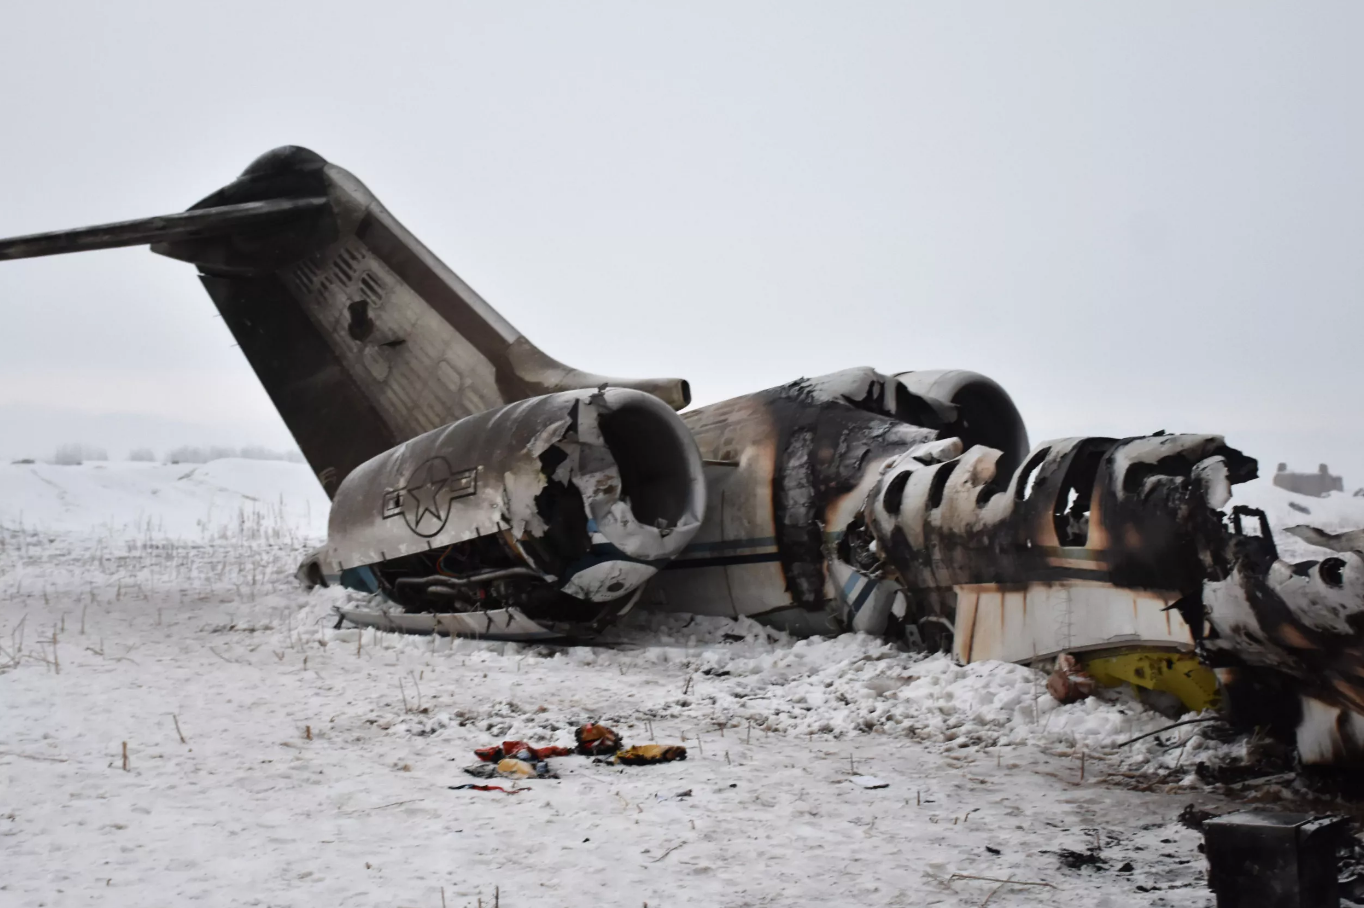 More Details On Mystery Crash Of US Air Force E-11A Military Plane In Afghanistan